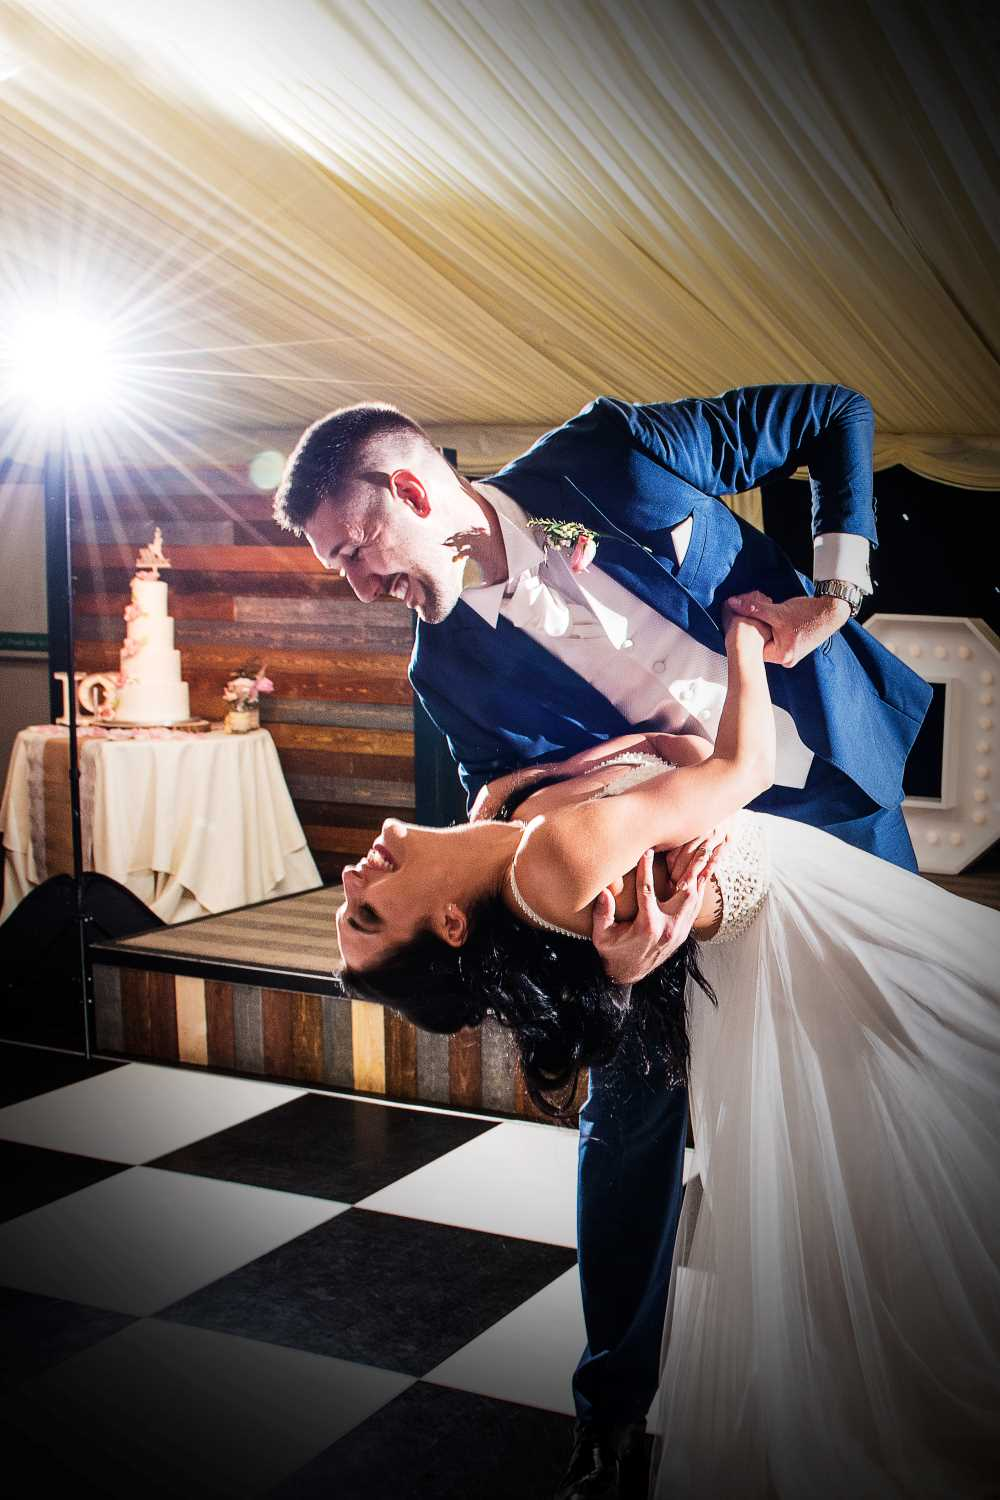 Groom dips bride during wedding night first dance.